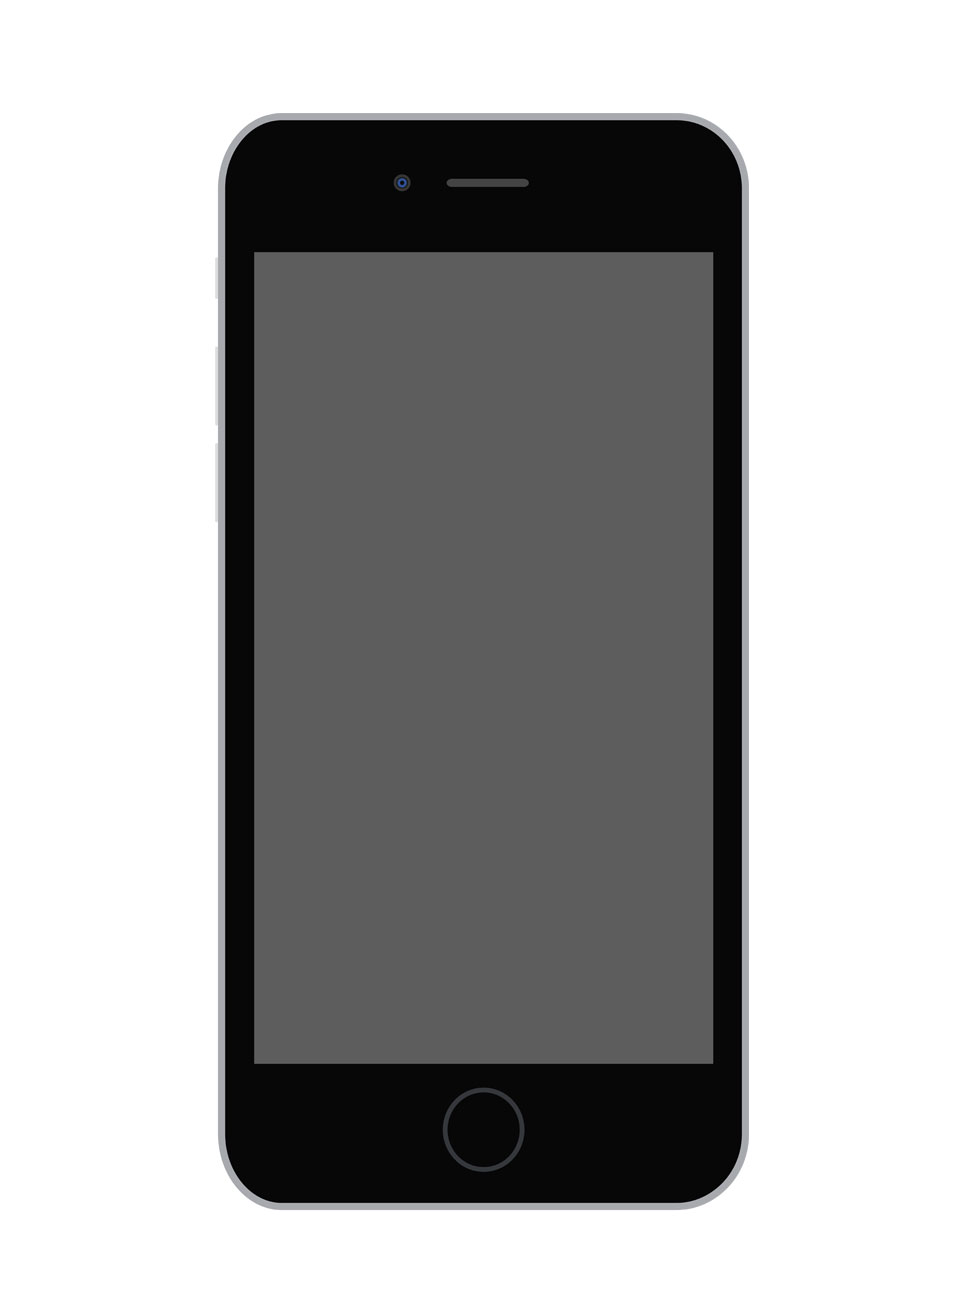 Flat iPhone 6 vector + iPhone sketch Mockup